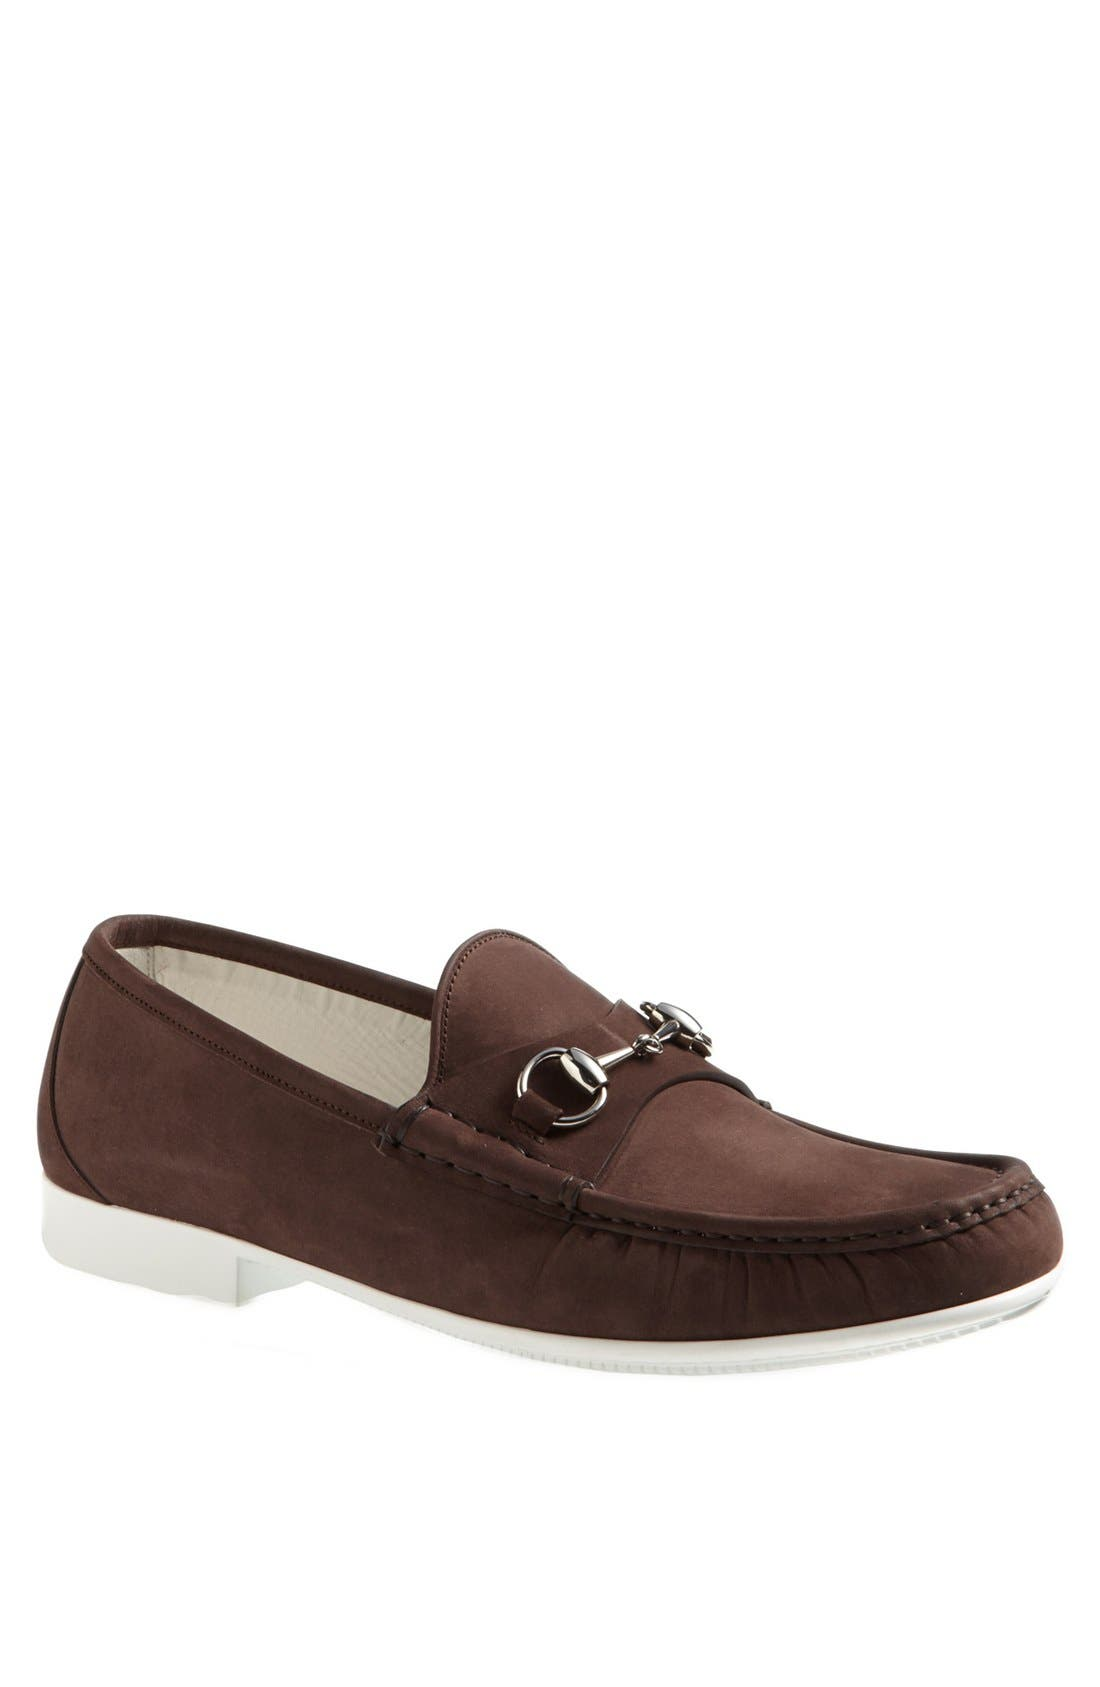 Alternate Image 1 Selected - Gucci 'Rafer' Bit Loafer